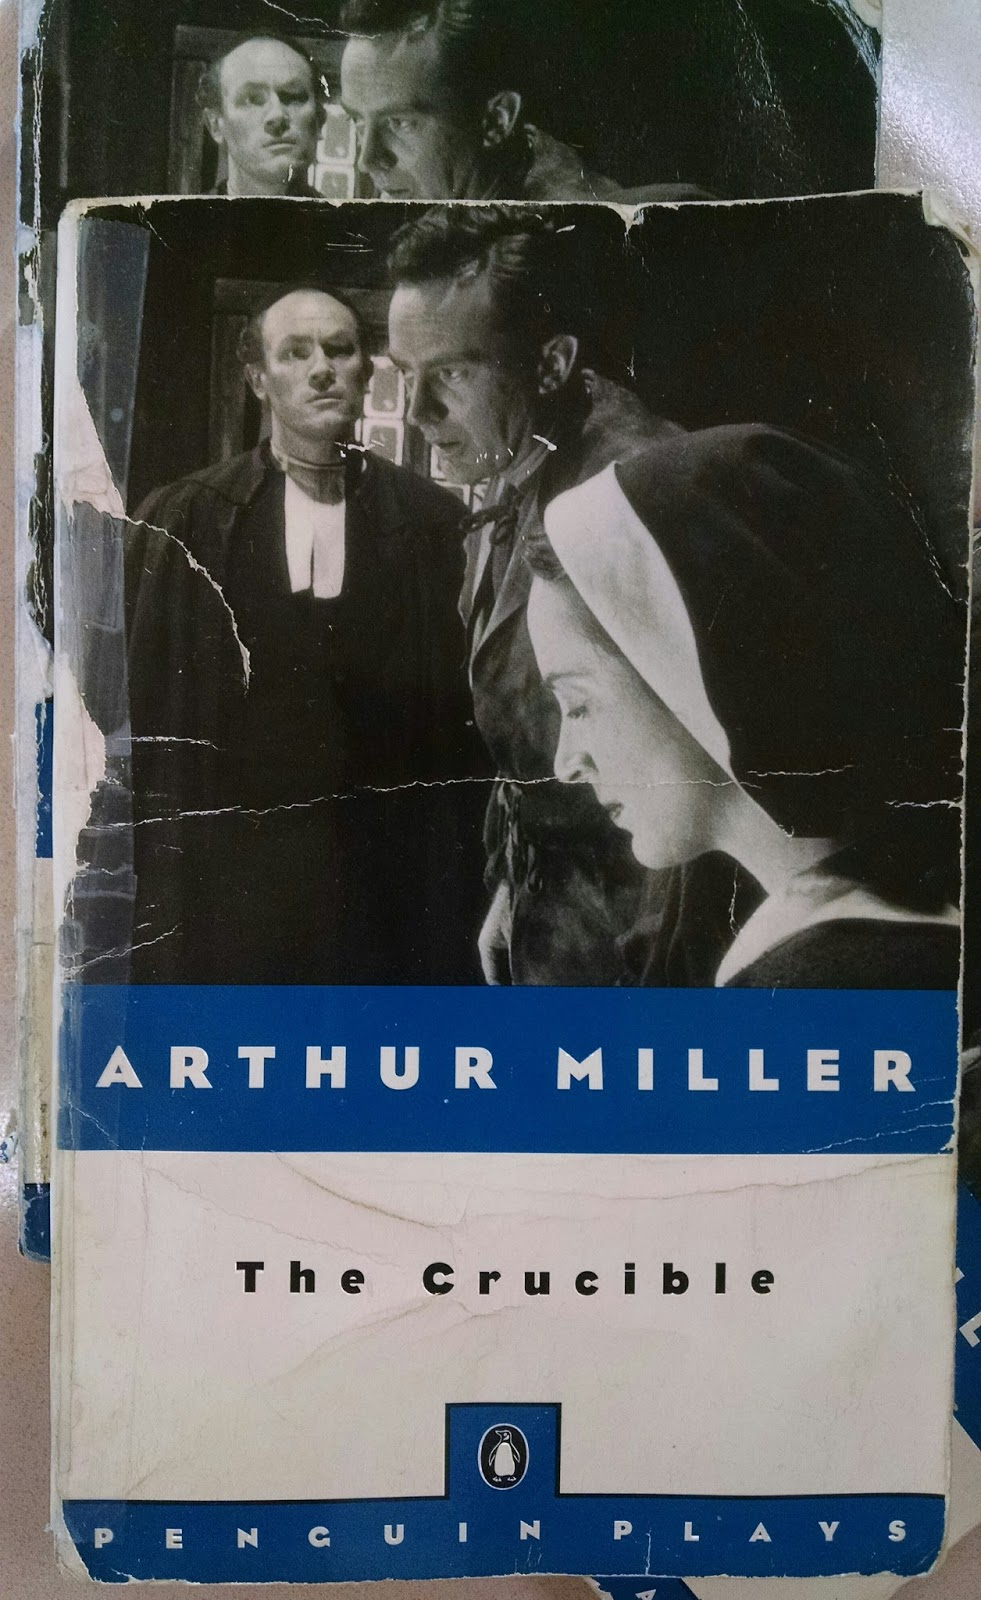 research paper on arthur miller With over 55,000 free research papers we have the writing help you need become a better writer in less time.